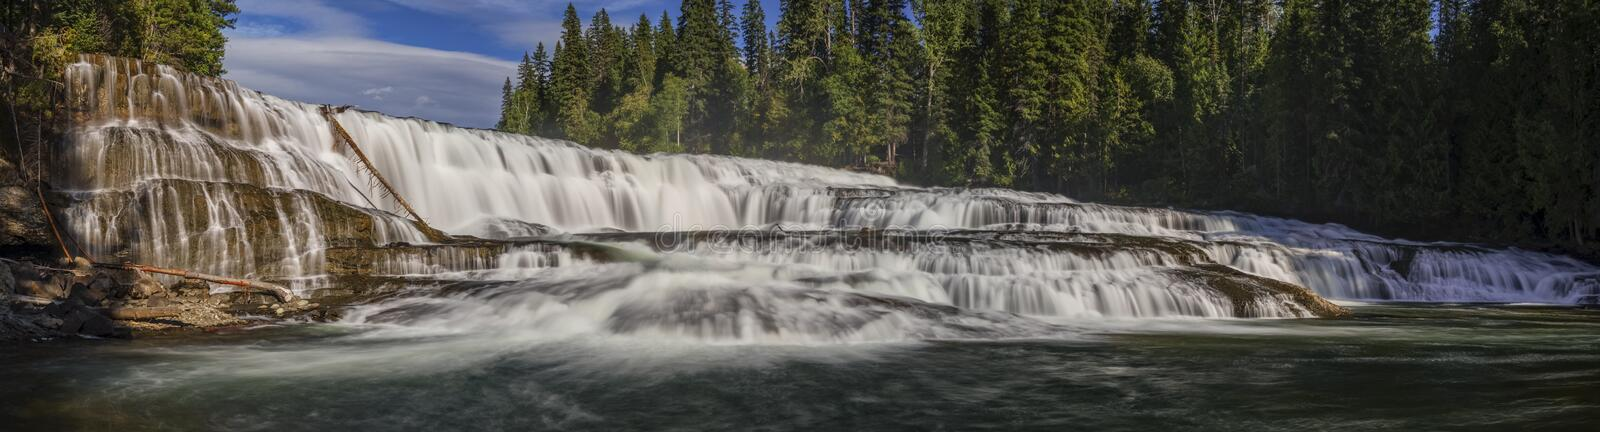 Dawson Falls, Wells Gray Provincial Park, near Clearwater, British Columbia, Canada, Panorama stock image